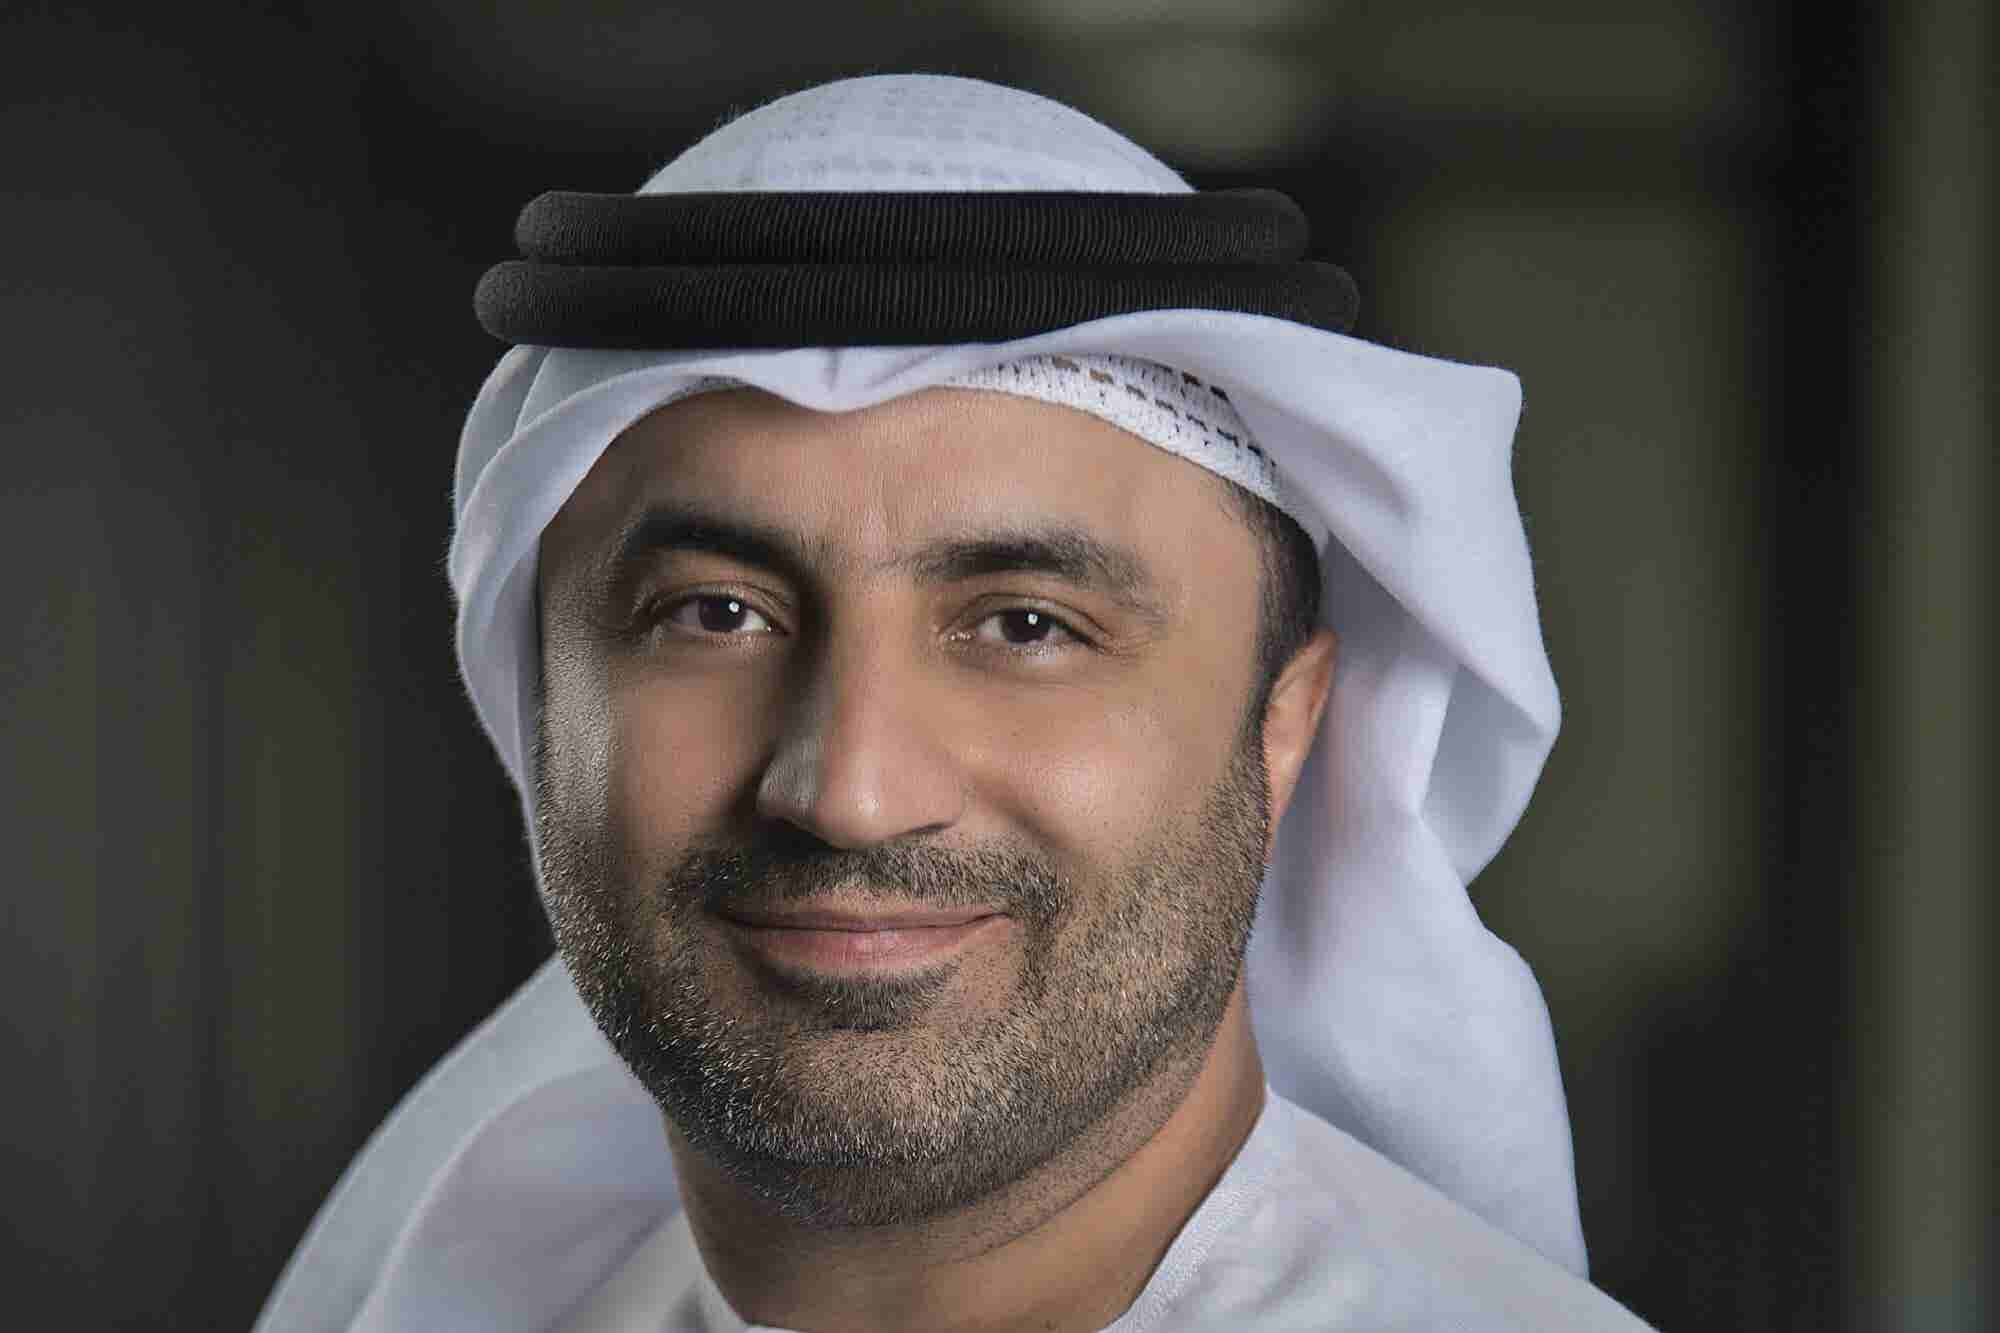 Krypto Labs Managing Director Dr. Saleh Al Hashemi On Supporting The UAE's Vision To Become A Global Innovation Hub